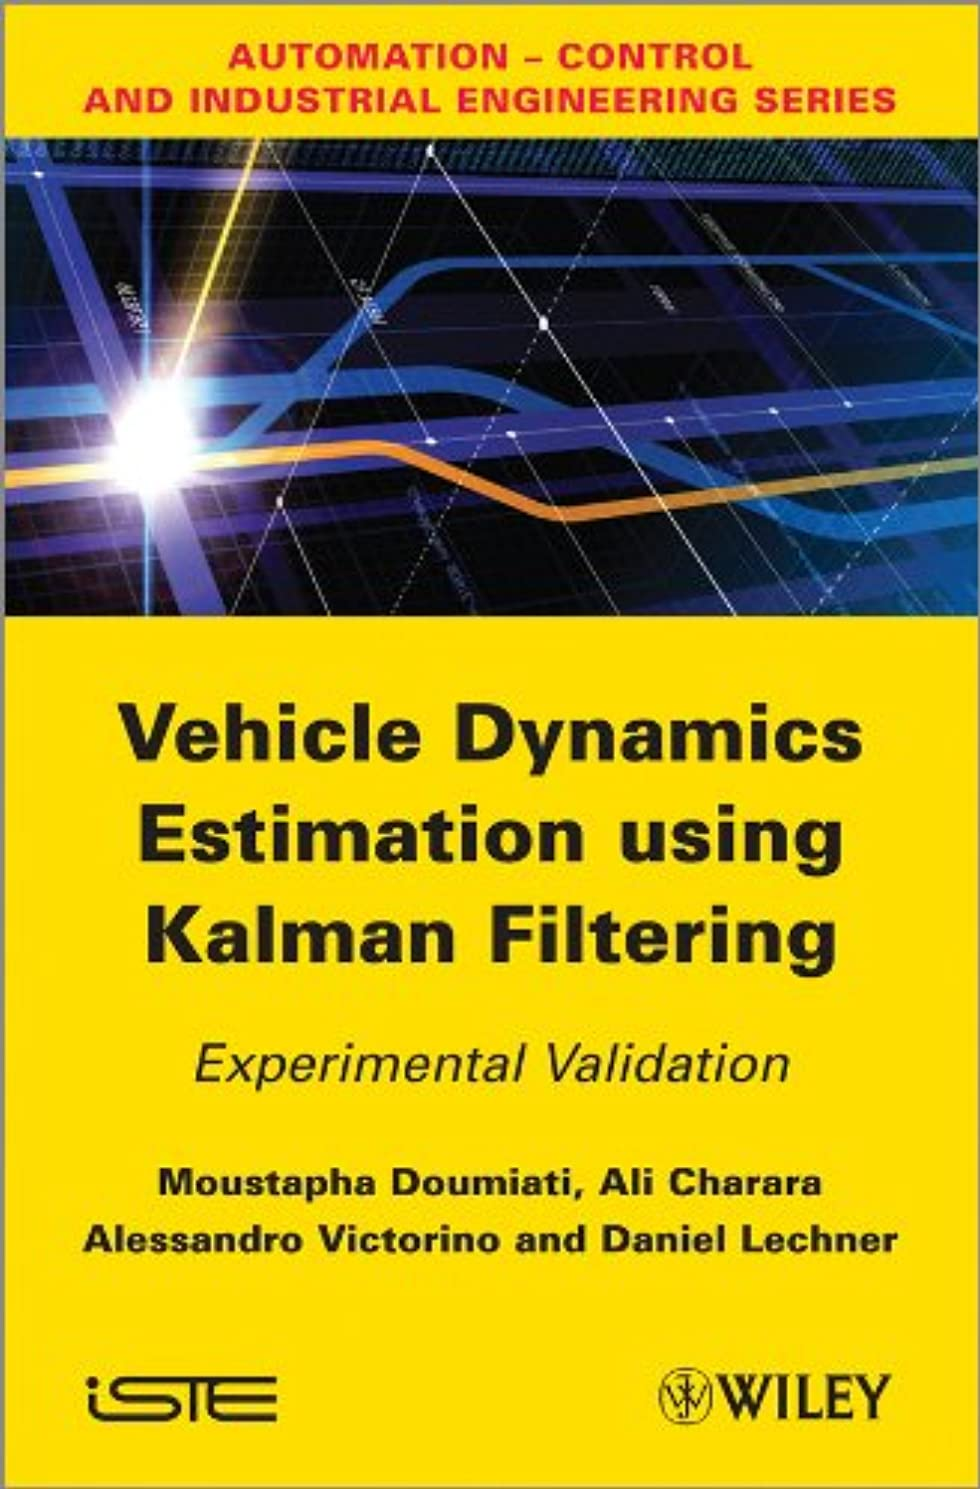 極貧恩赦テスピアンVehicle Dynamics Estimation using Kalman Filtering: Experimental Validation (English Edition)